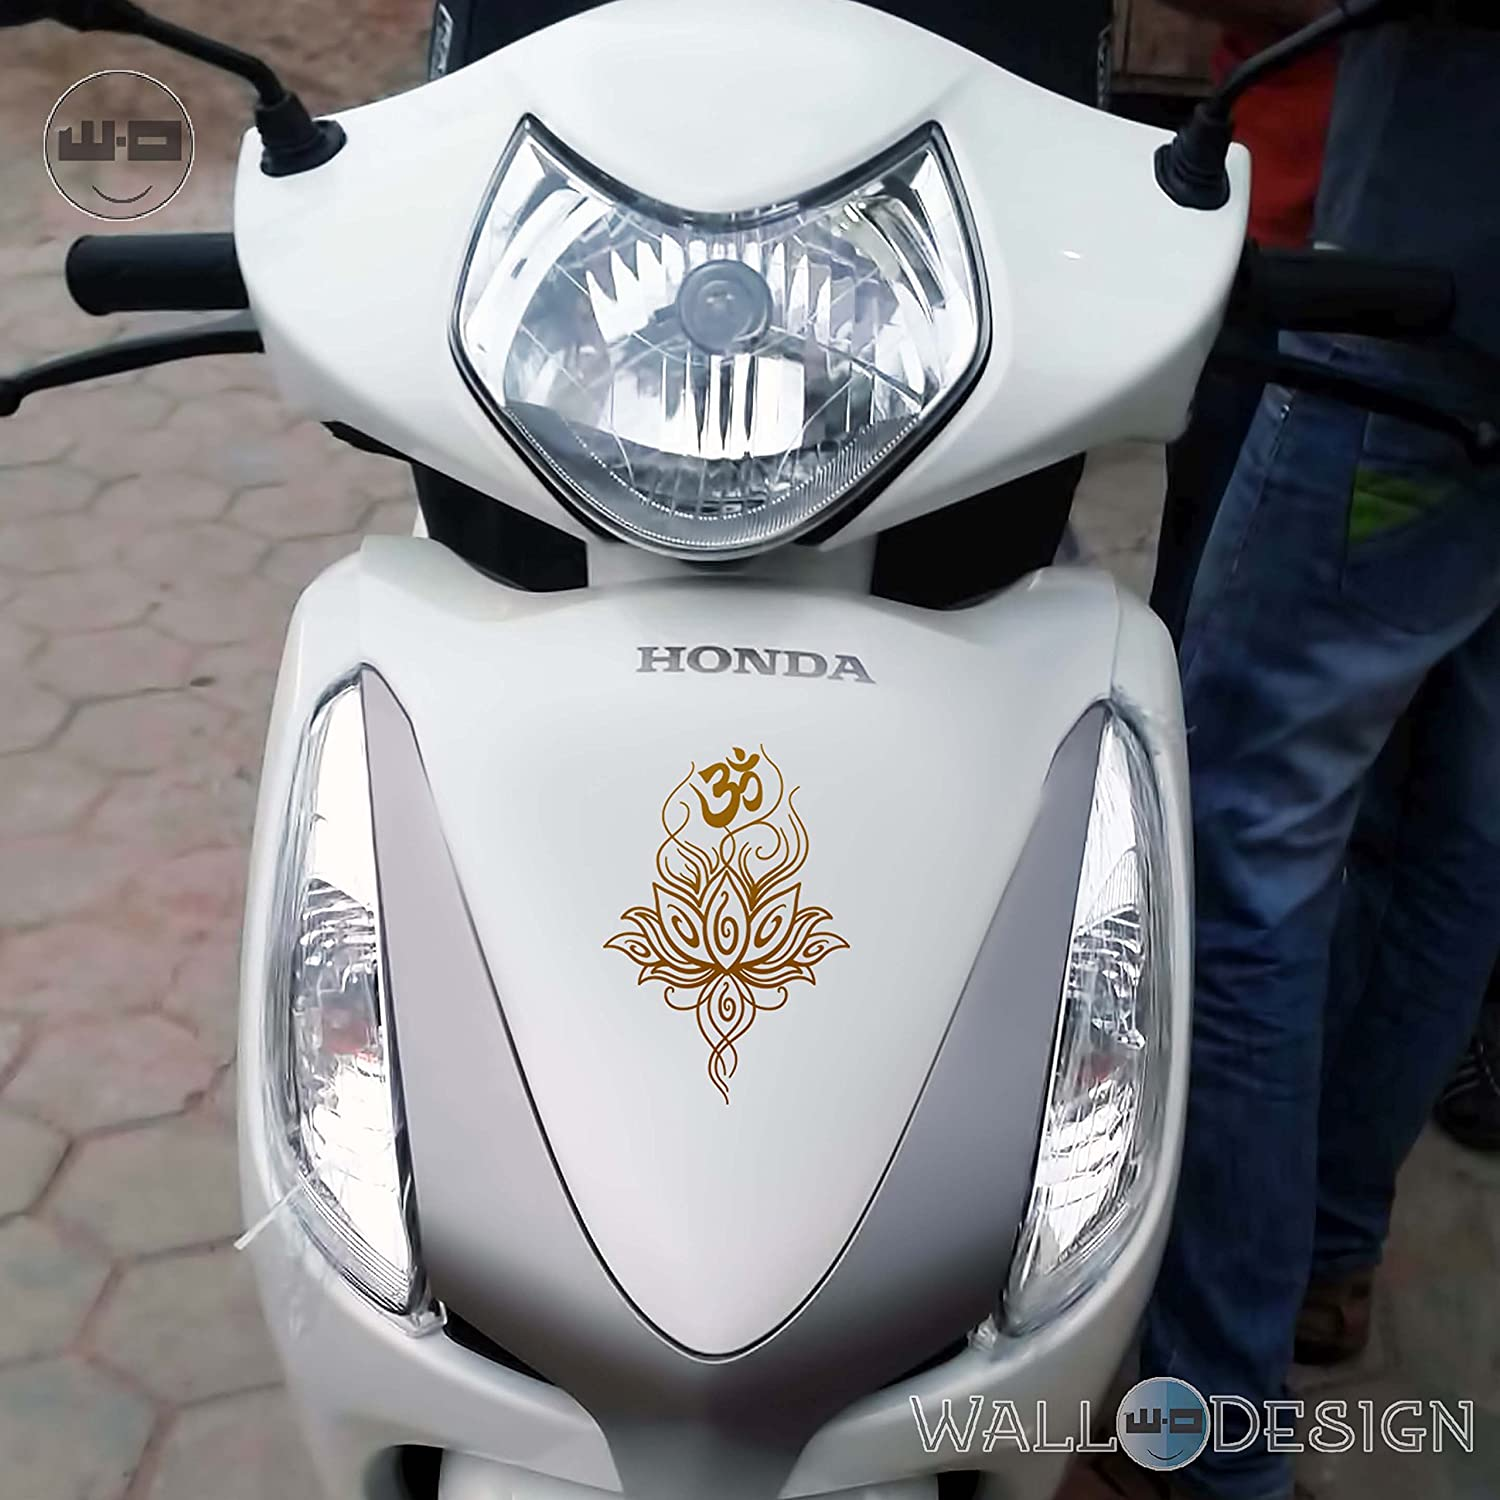 Walldesign decals for bikes aum design gold colour reflective stickers amazon in car motorbike